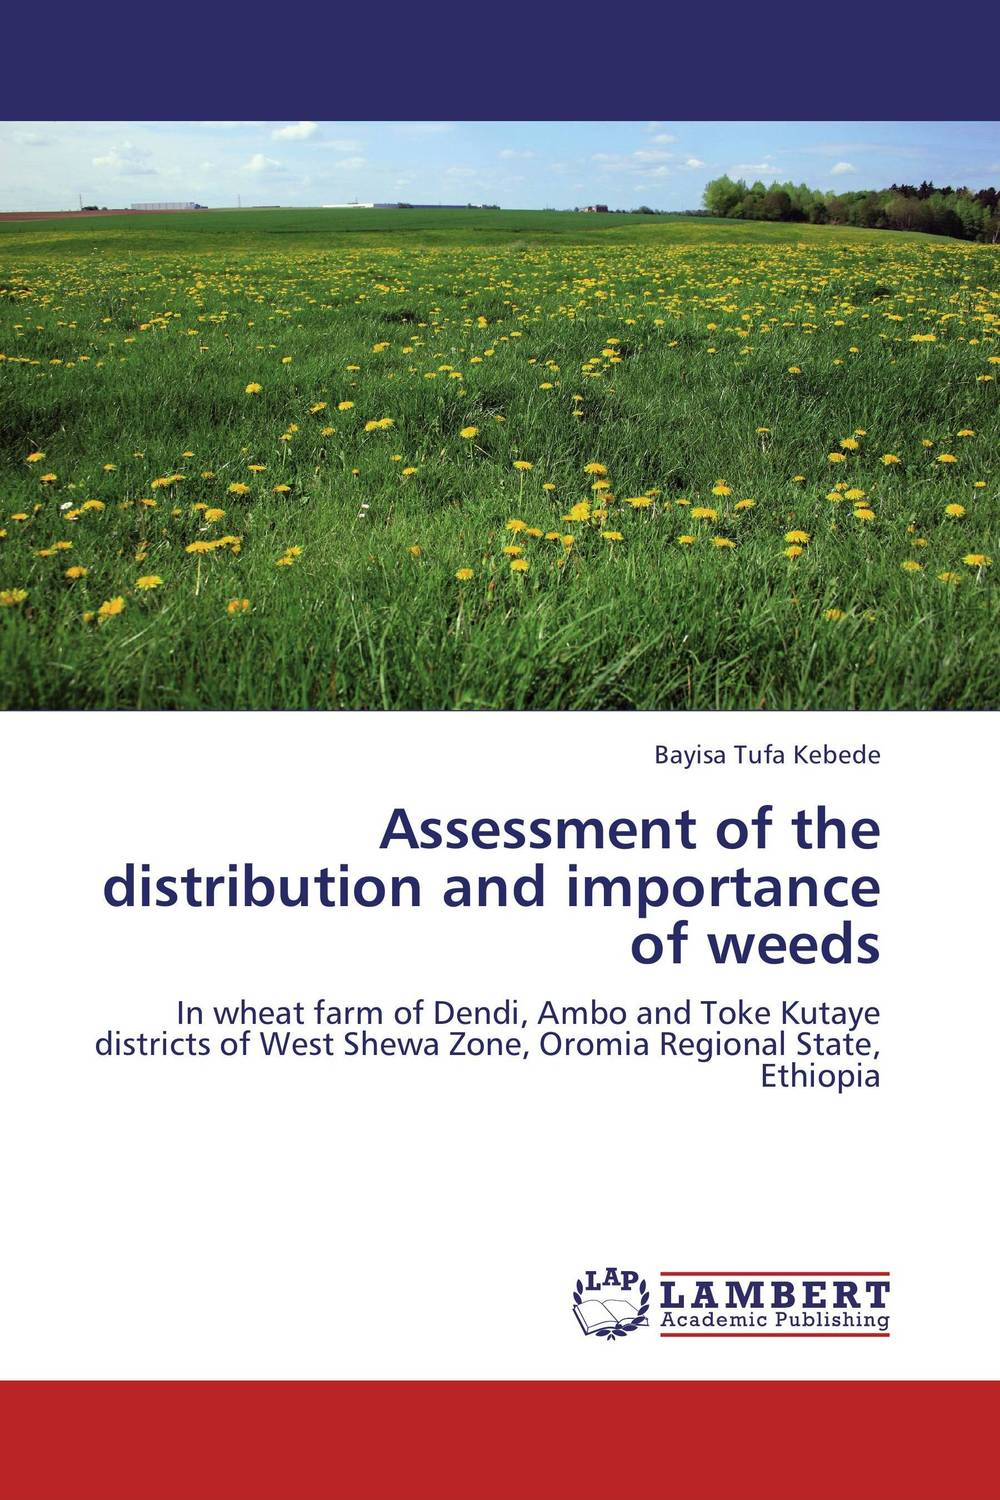 Assessment of the distribution and importance of weeds